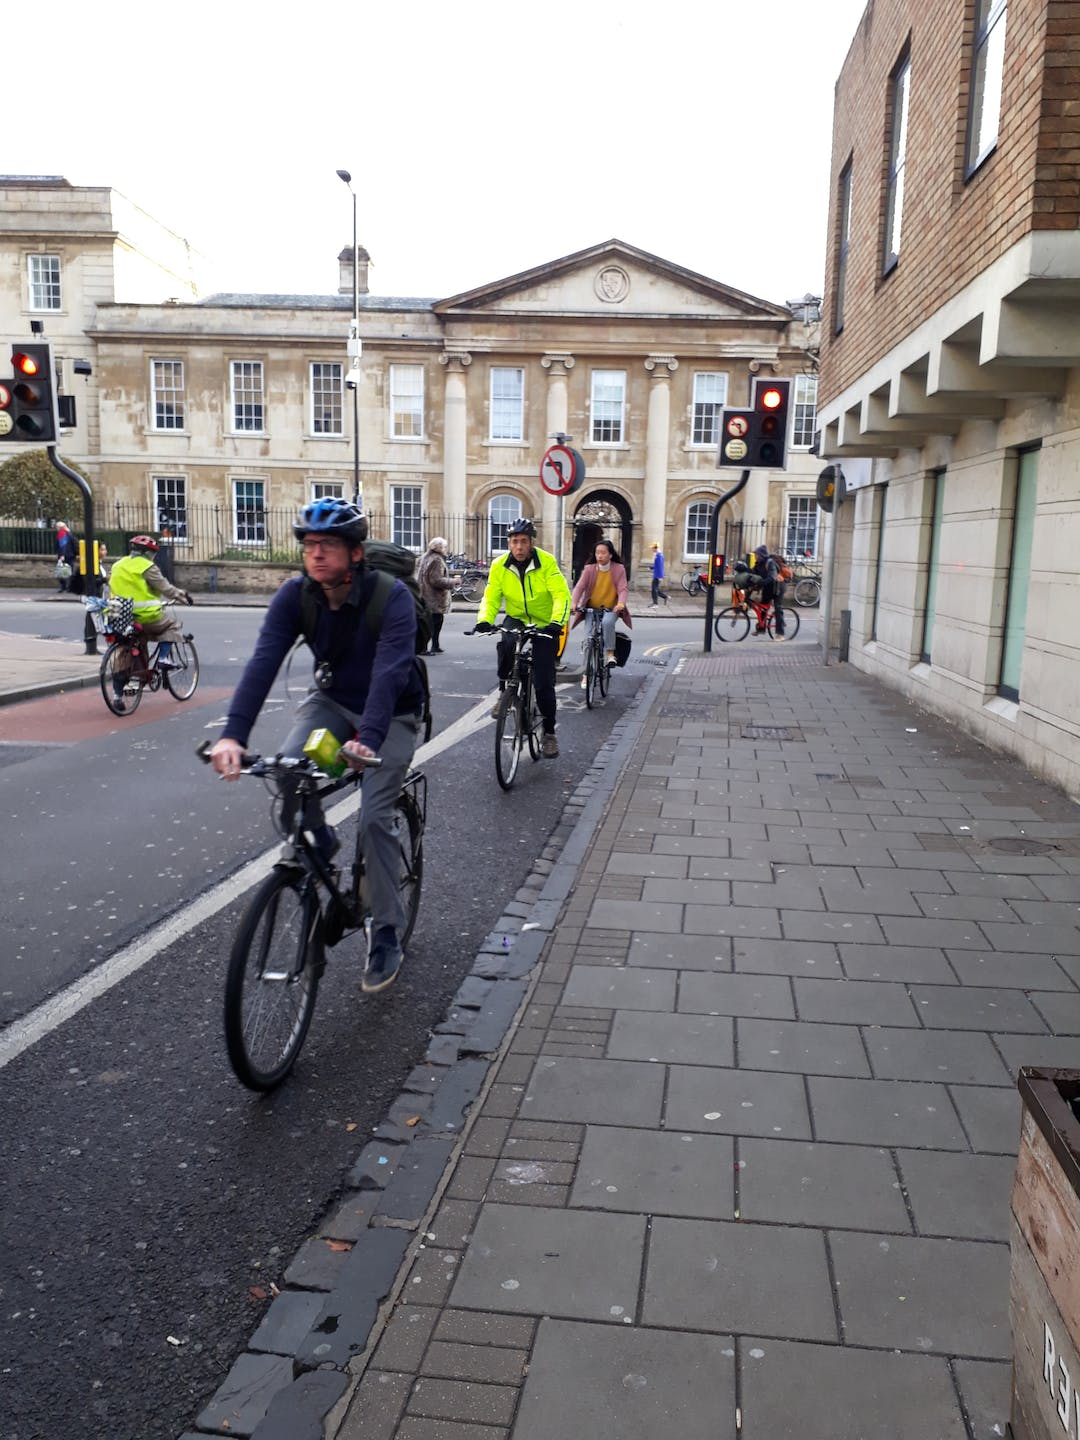 Cyclists in Cambridge turning on to Downing Street